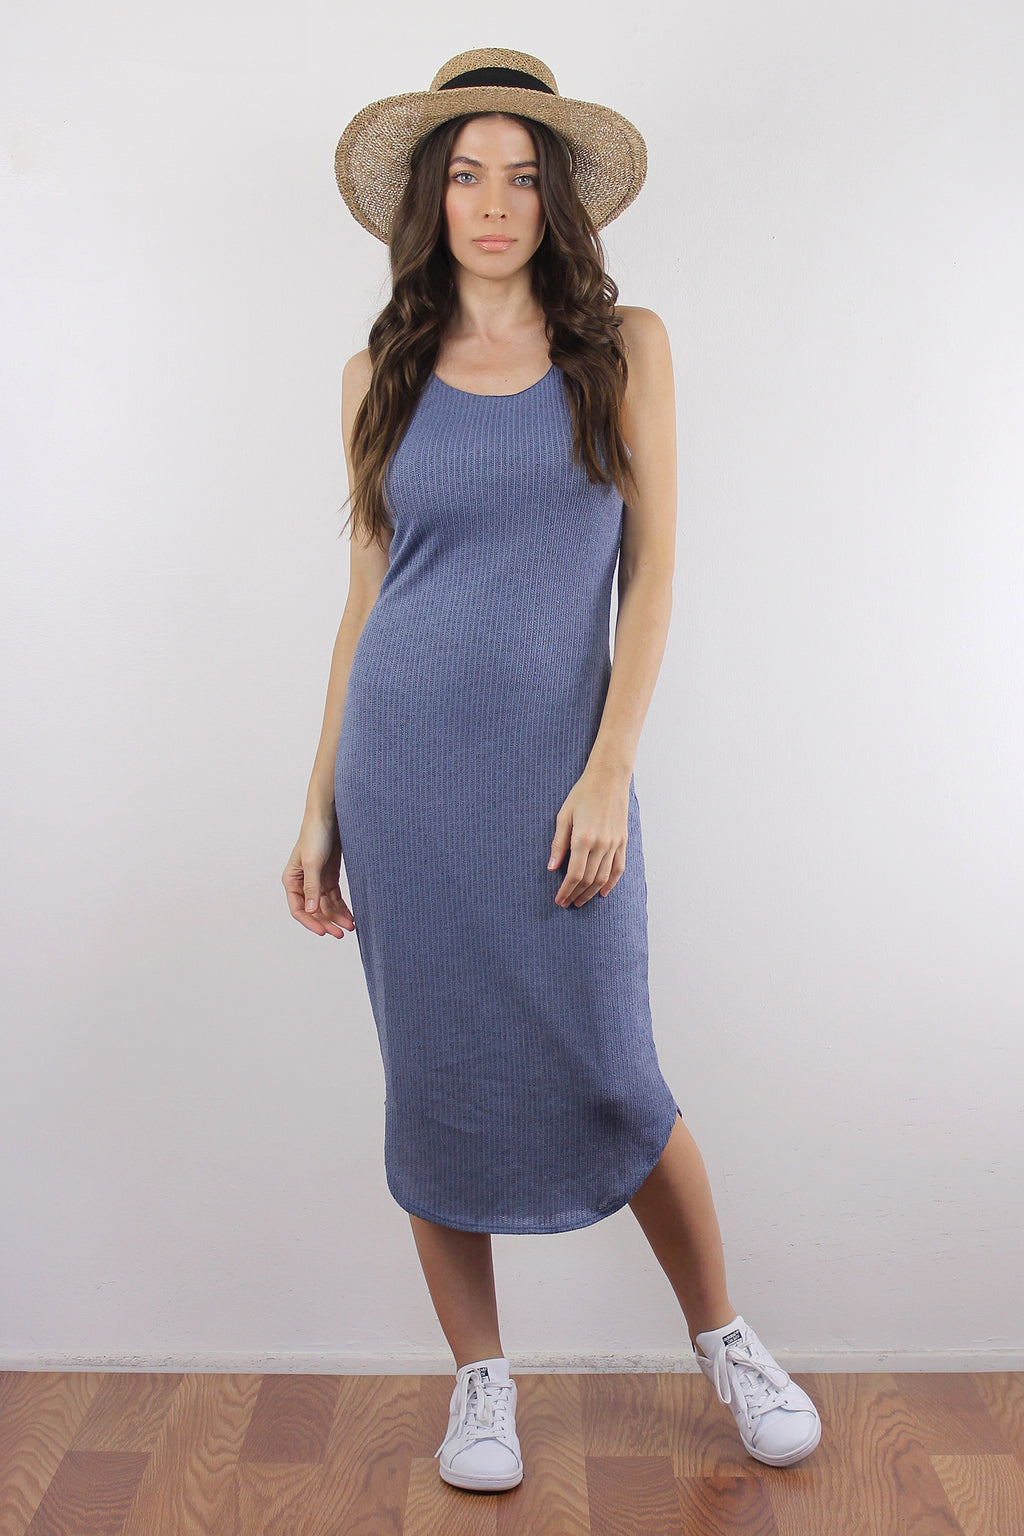 Fitted knit mid length dress, in Dusty Blue. Image 5